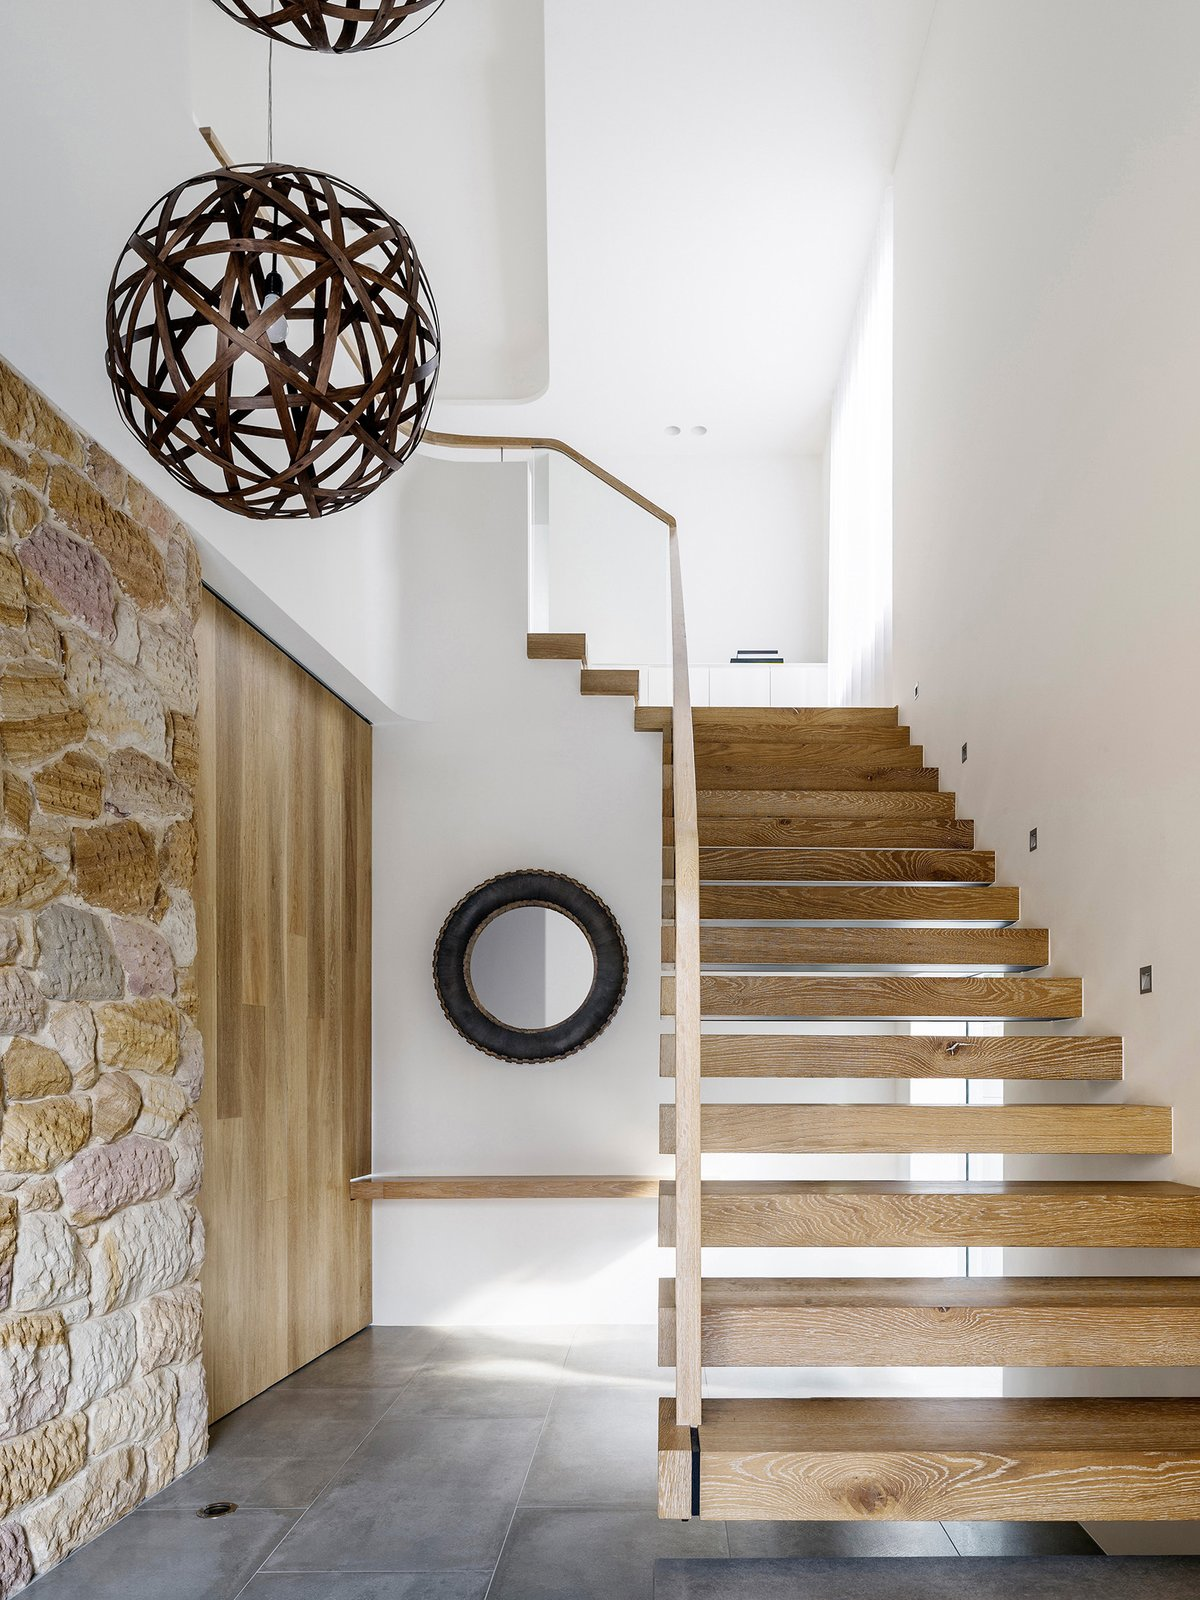 Staircase, Wood Tread, and Wood Railing  Photo 1 of 5 in Top 5 Homes of the Week With Sublime Staircases from Sticks & Stones Home